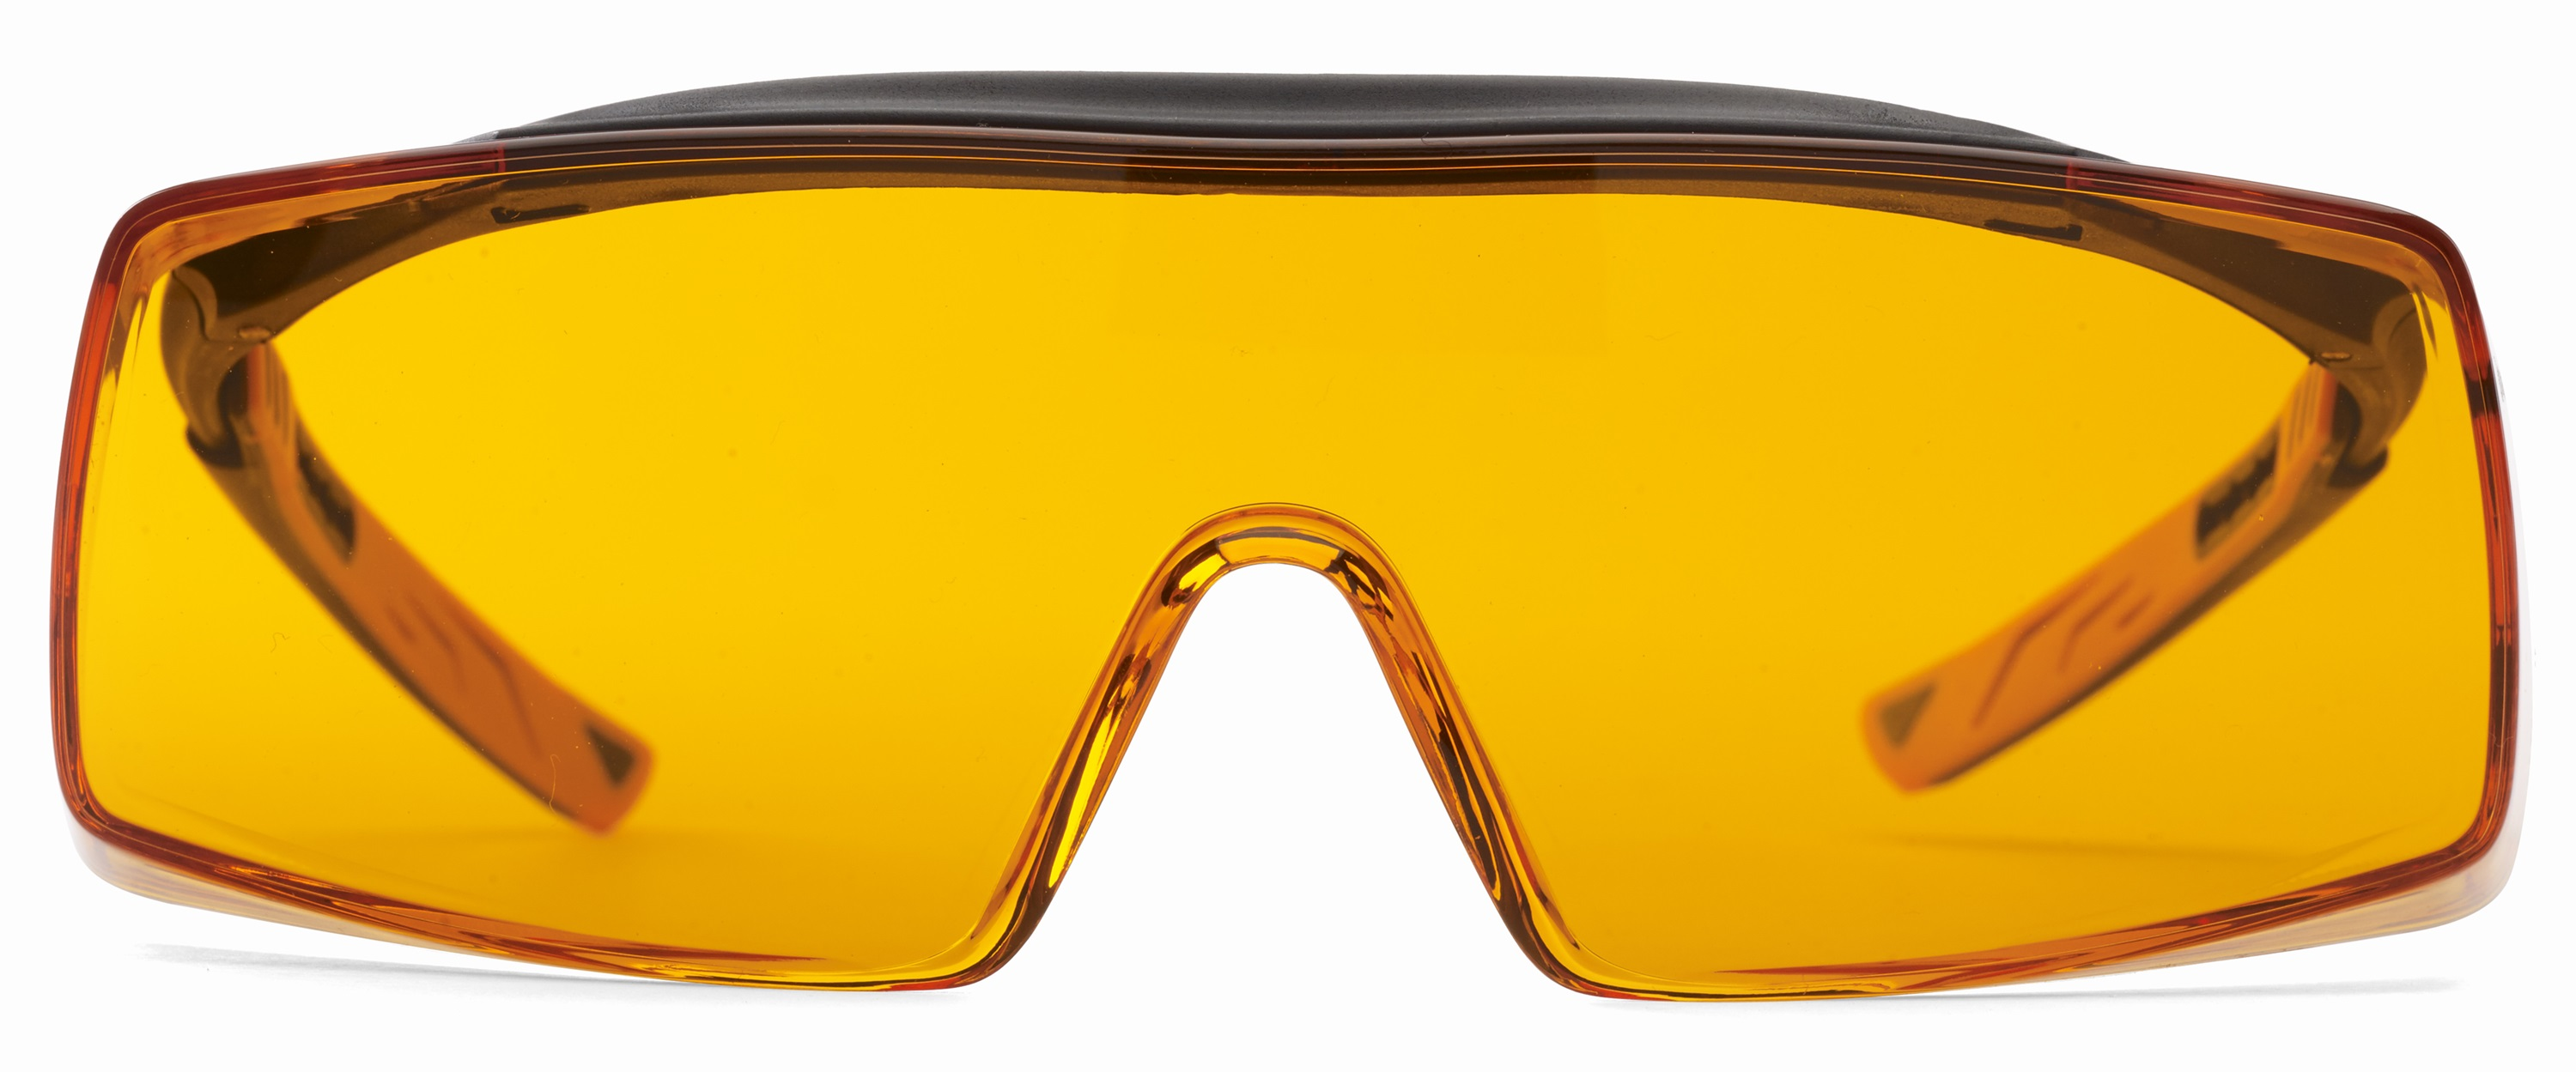 Glacubora Monoart Glasses Cube orange védőszemüveg